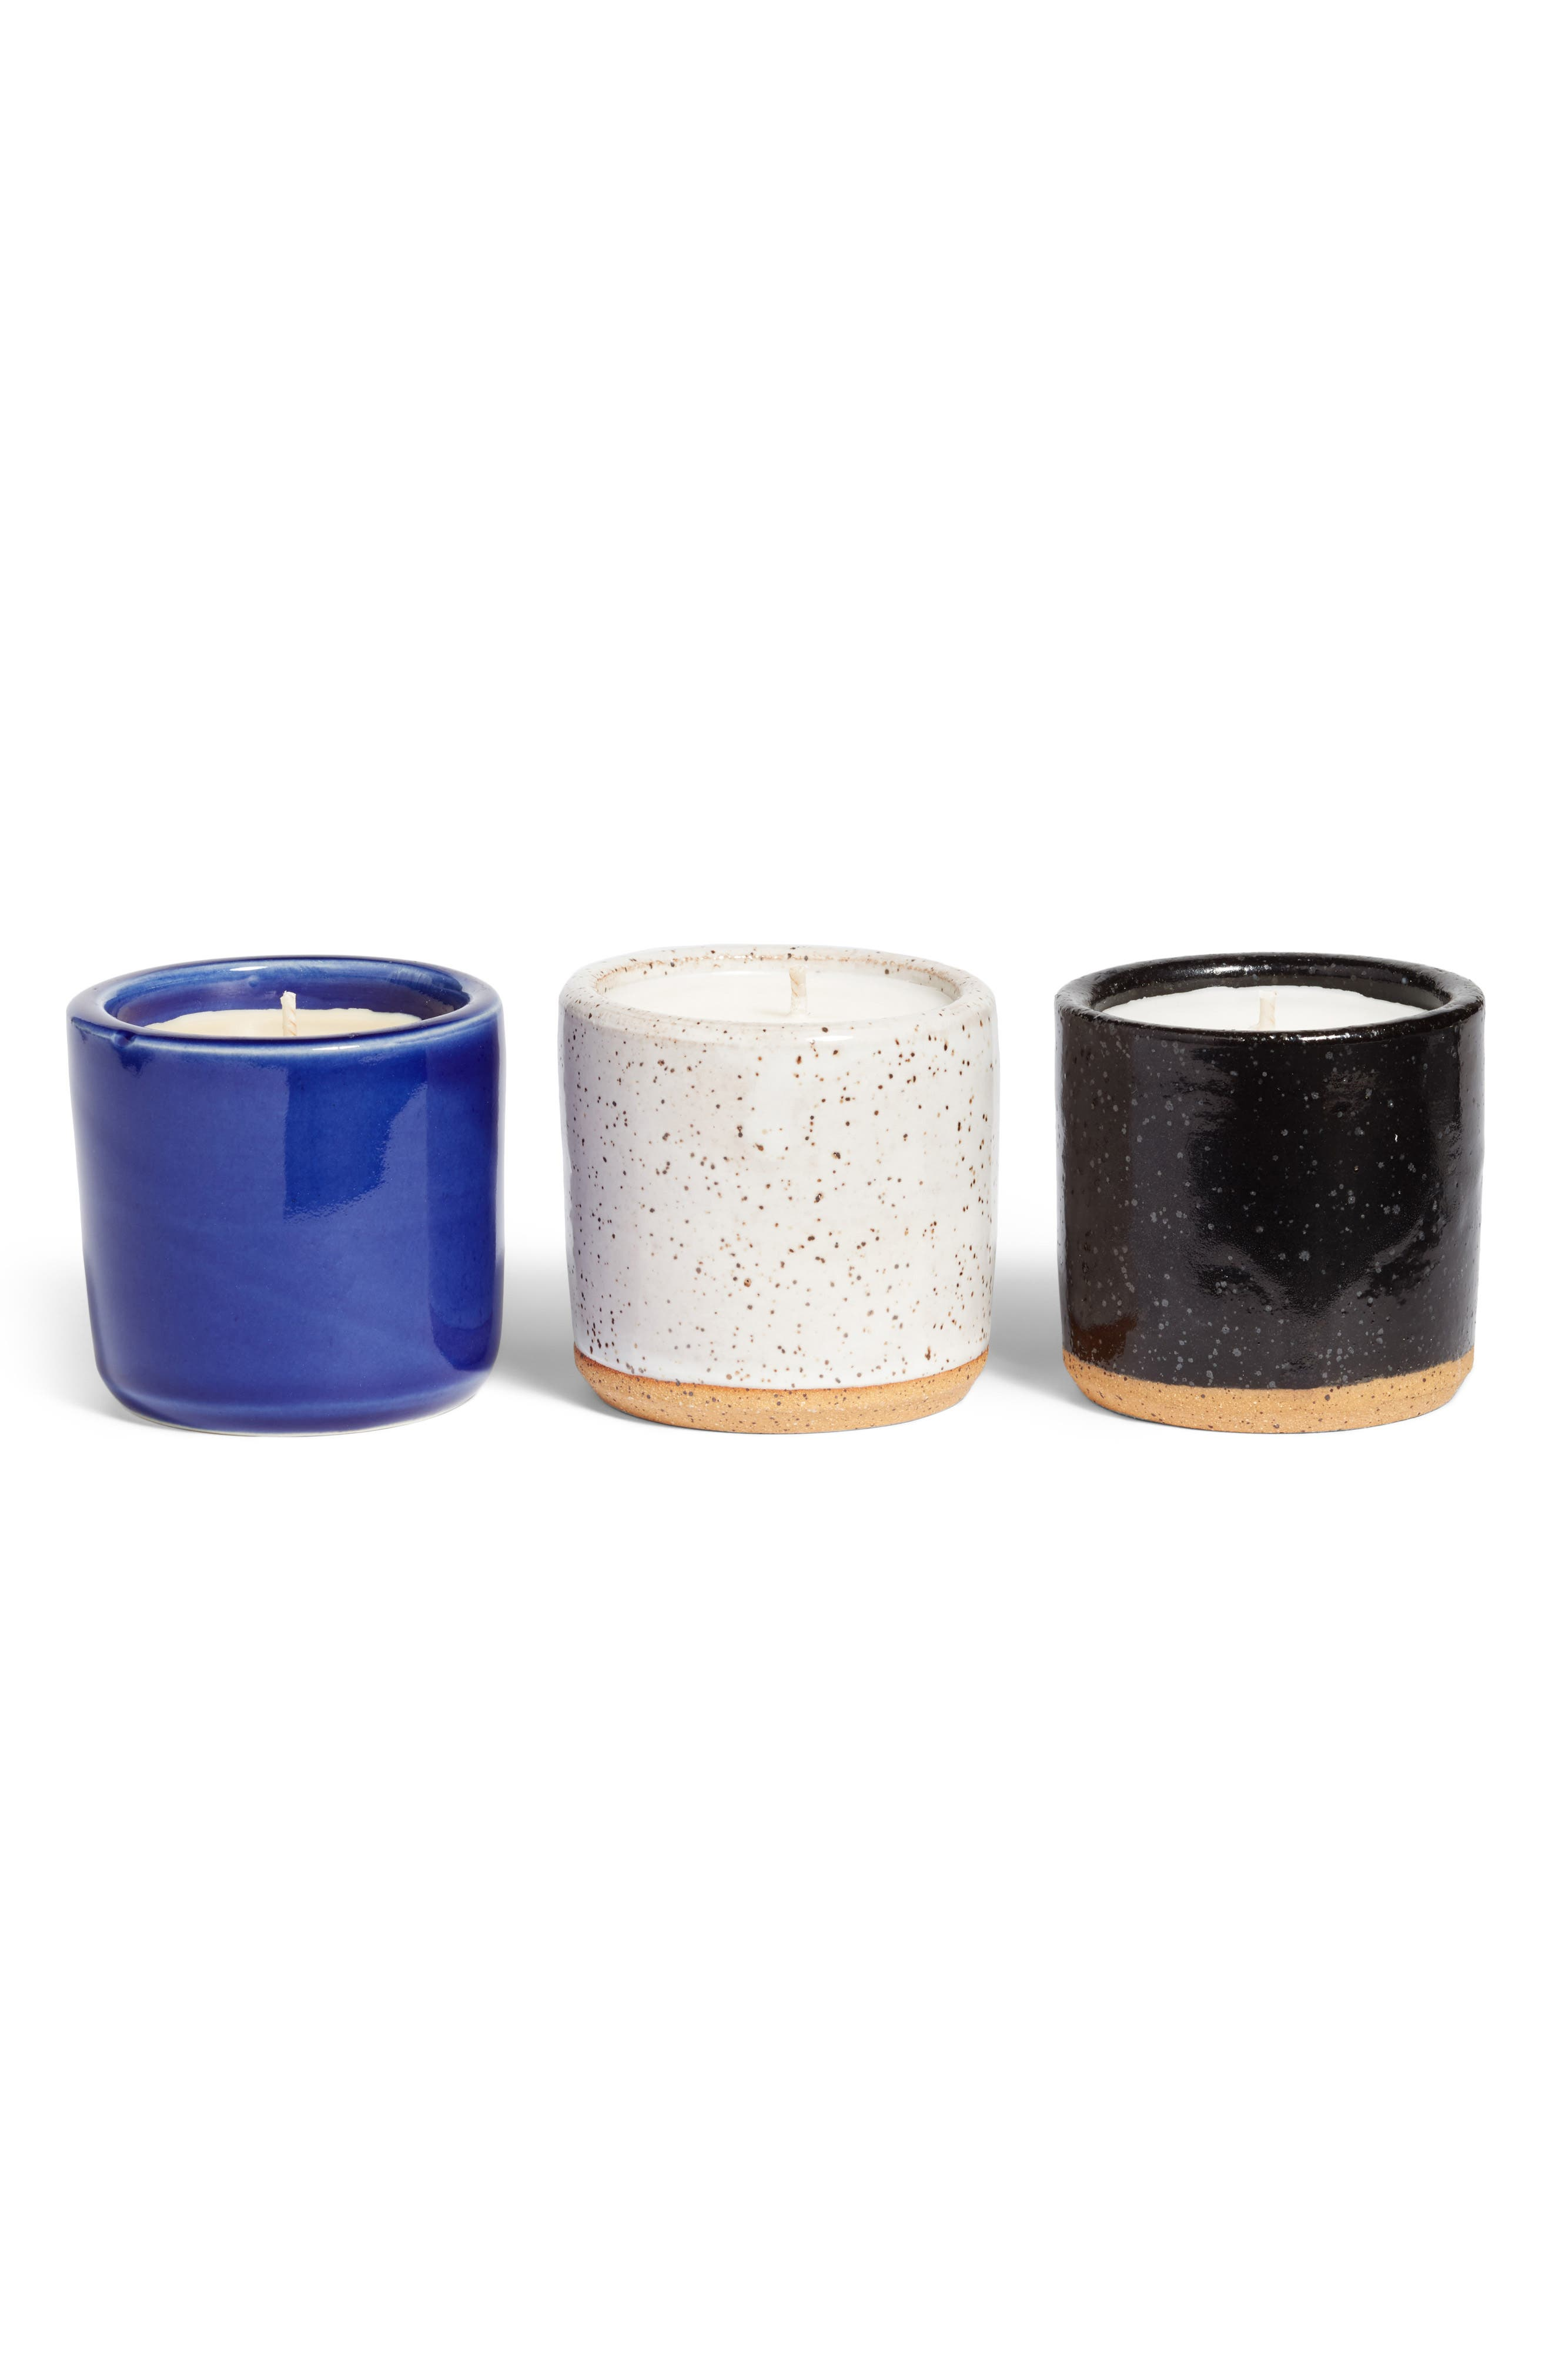 Set of 3 Ceramic Scented Candles,                         Main,                         color, 001